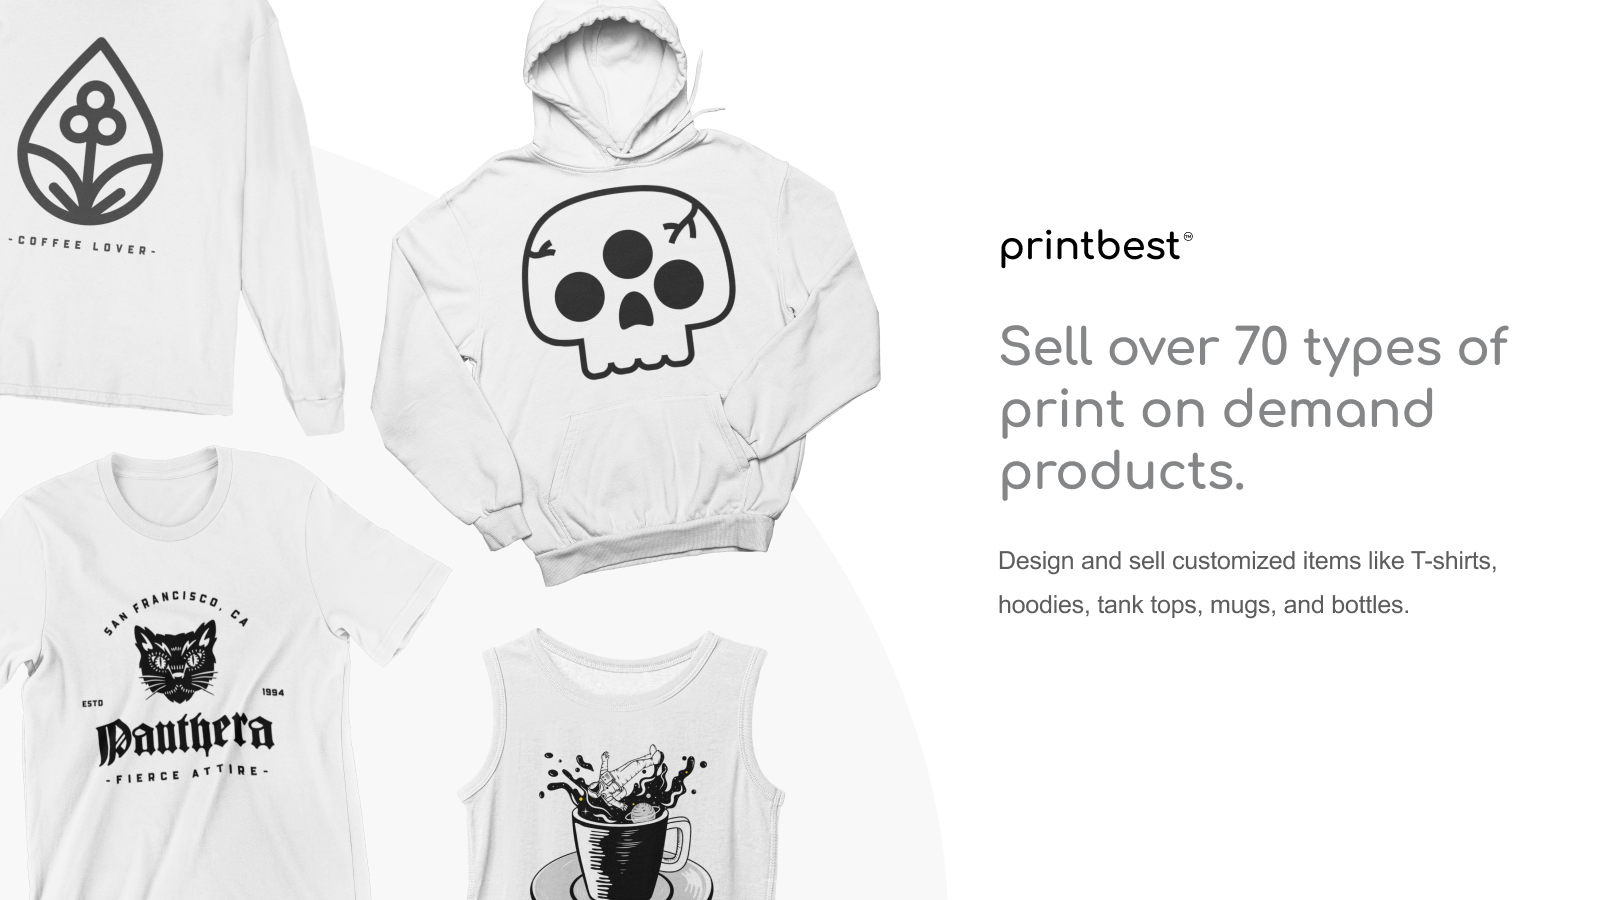 Sell over 70 types of print on demand products